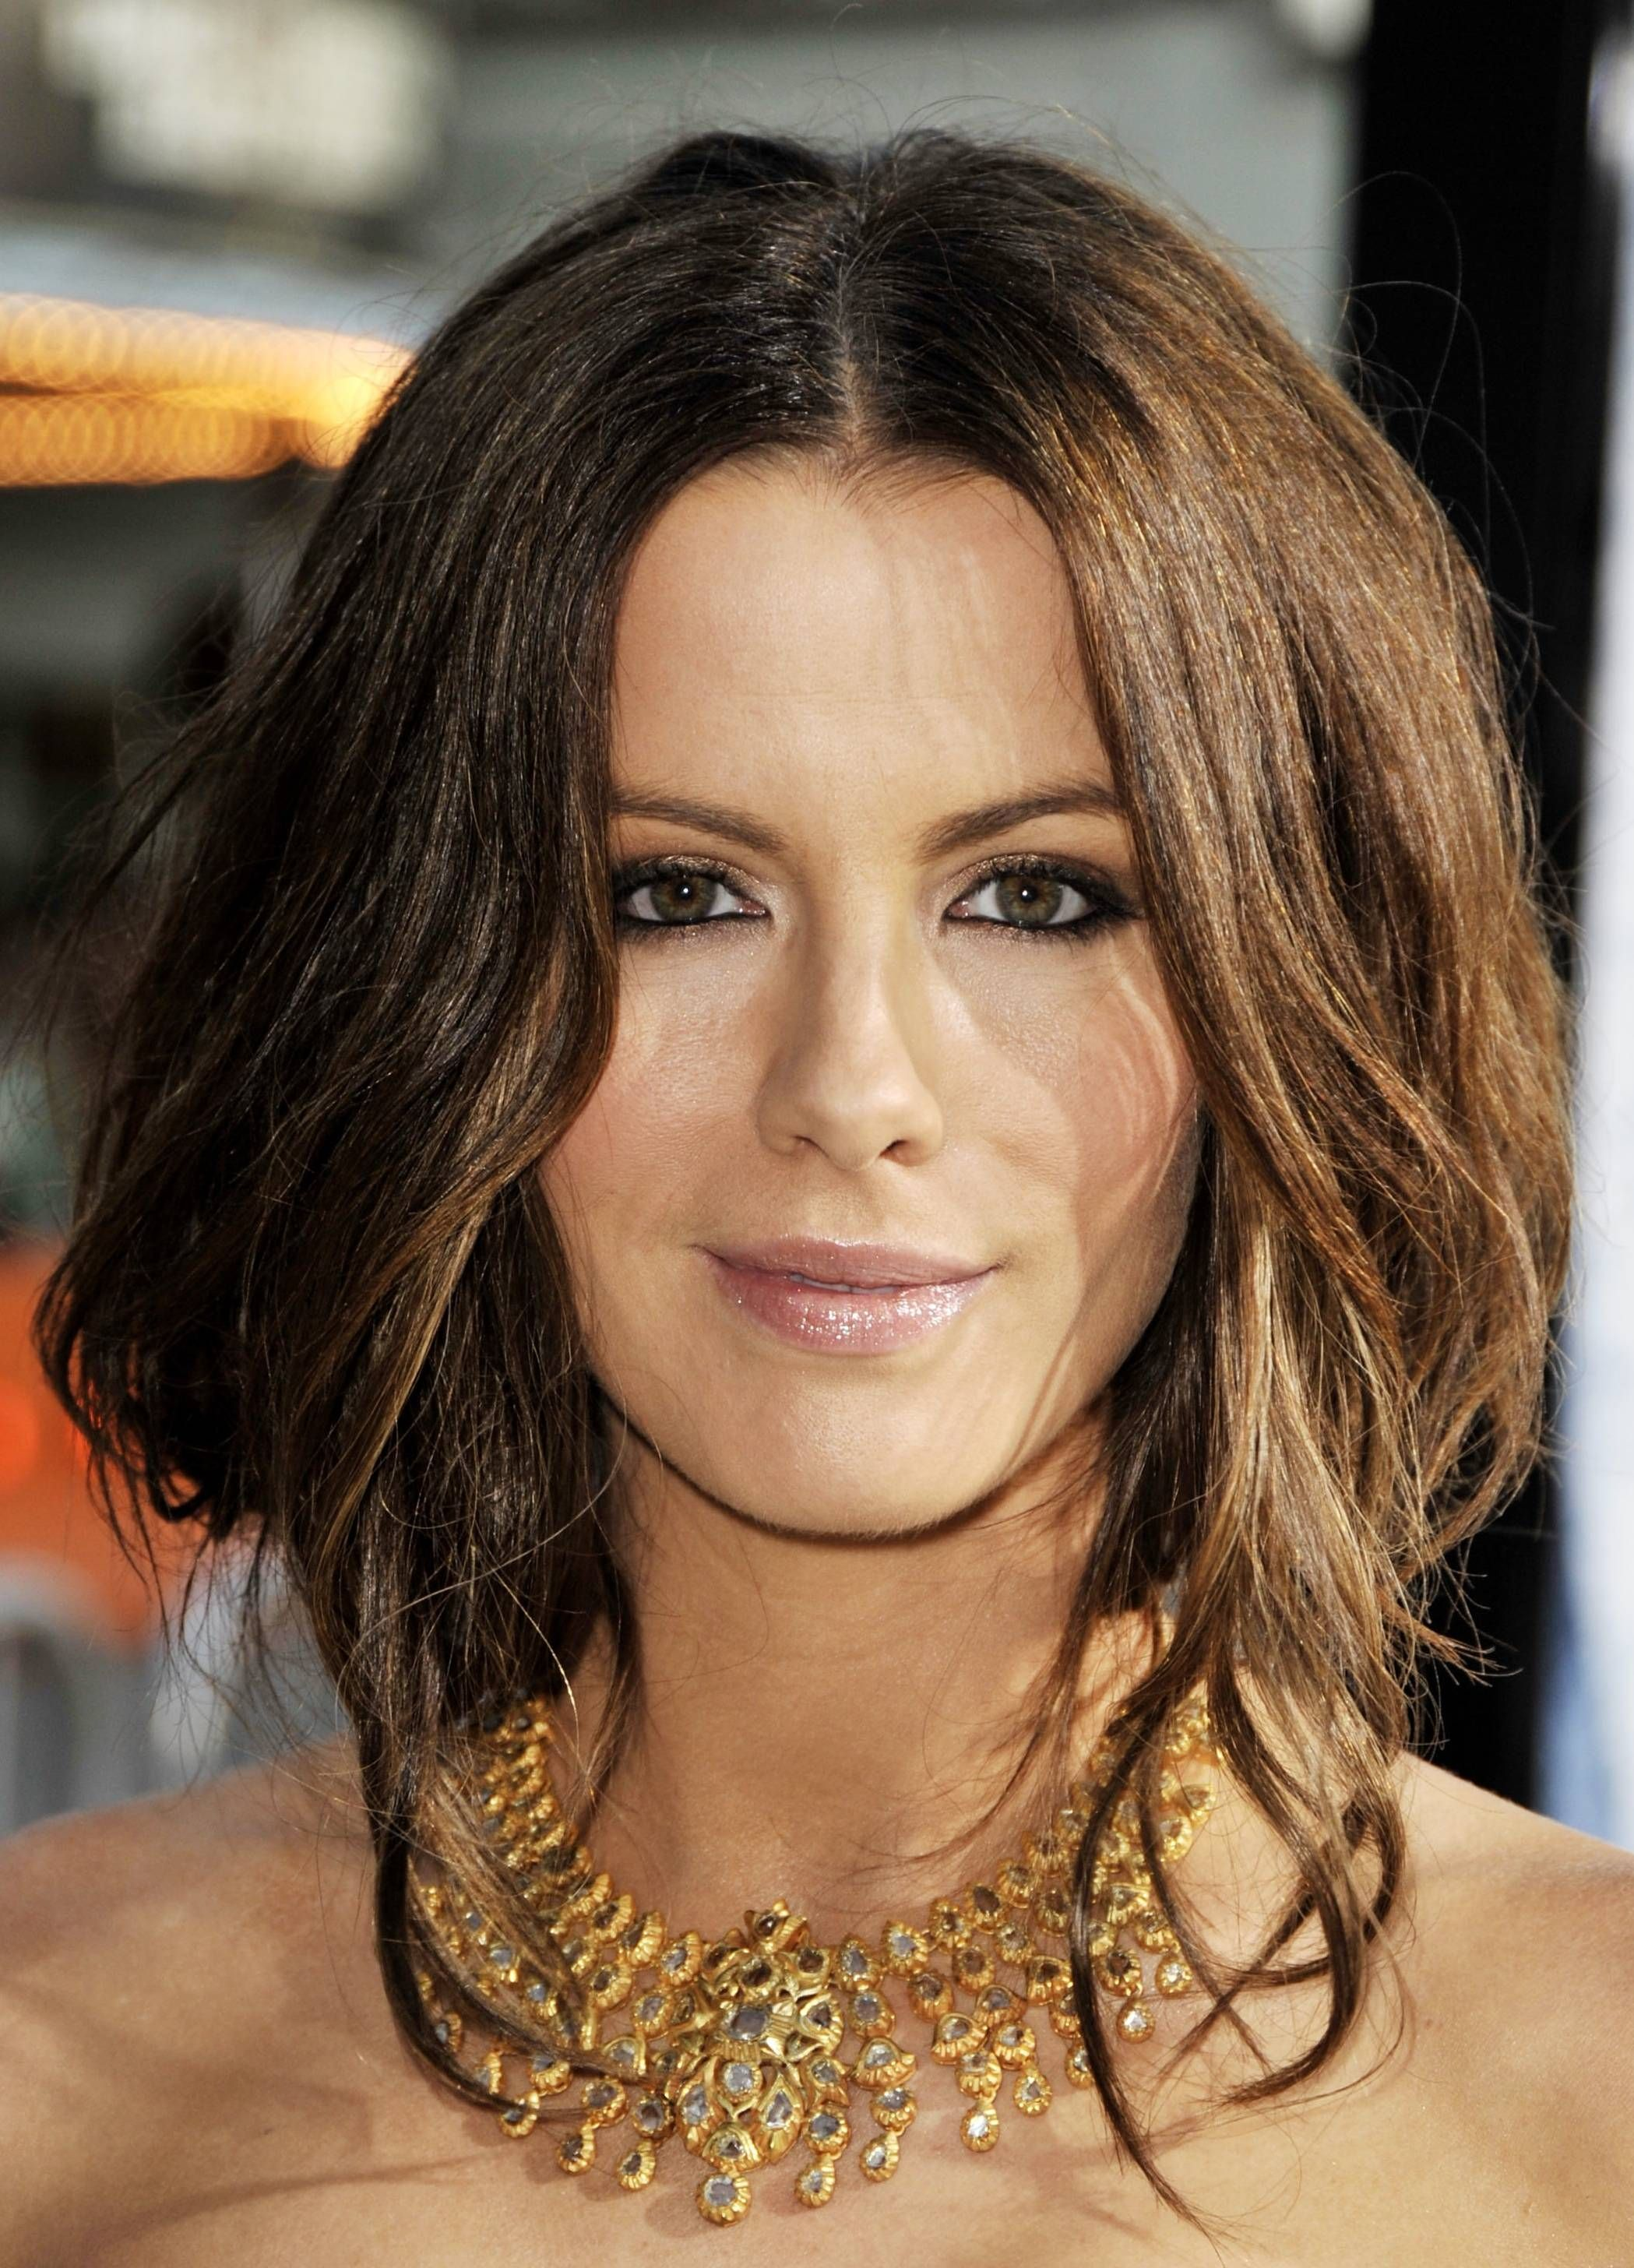 The Fake Bob Hairstyle Trend For Prom Can You Hair Me Pinterest